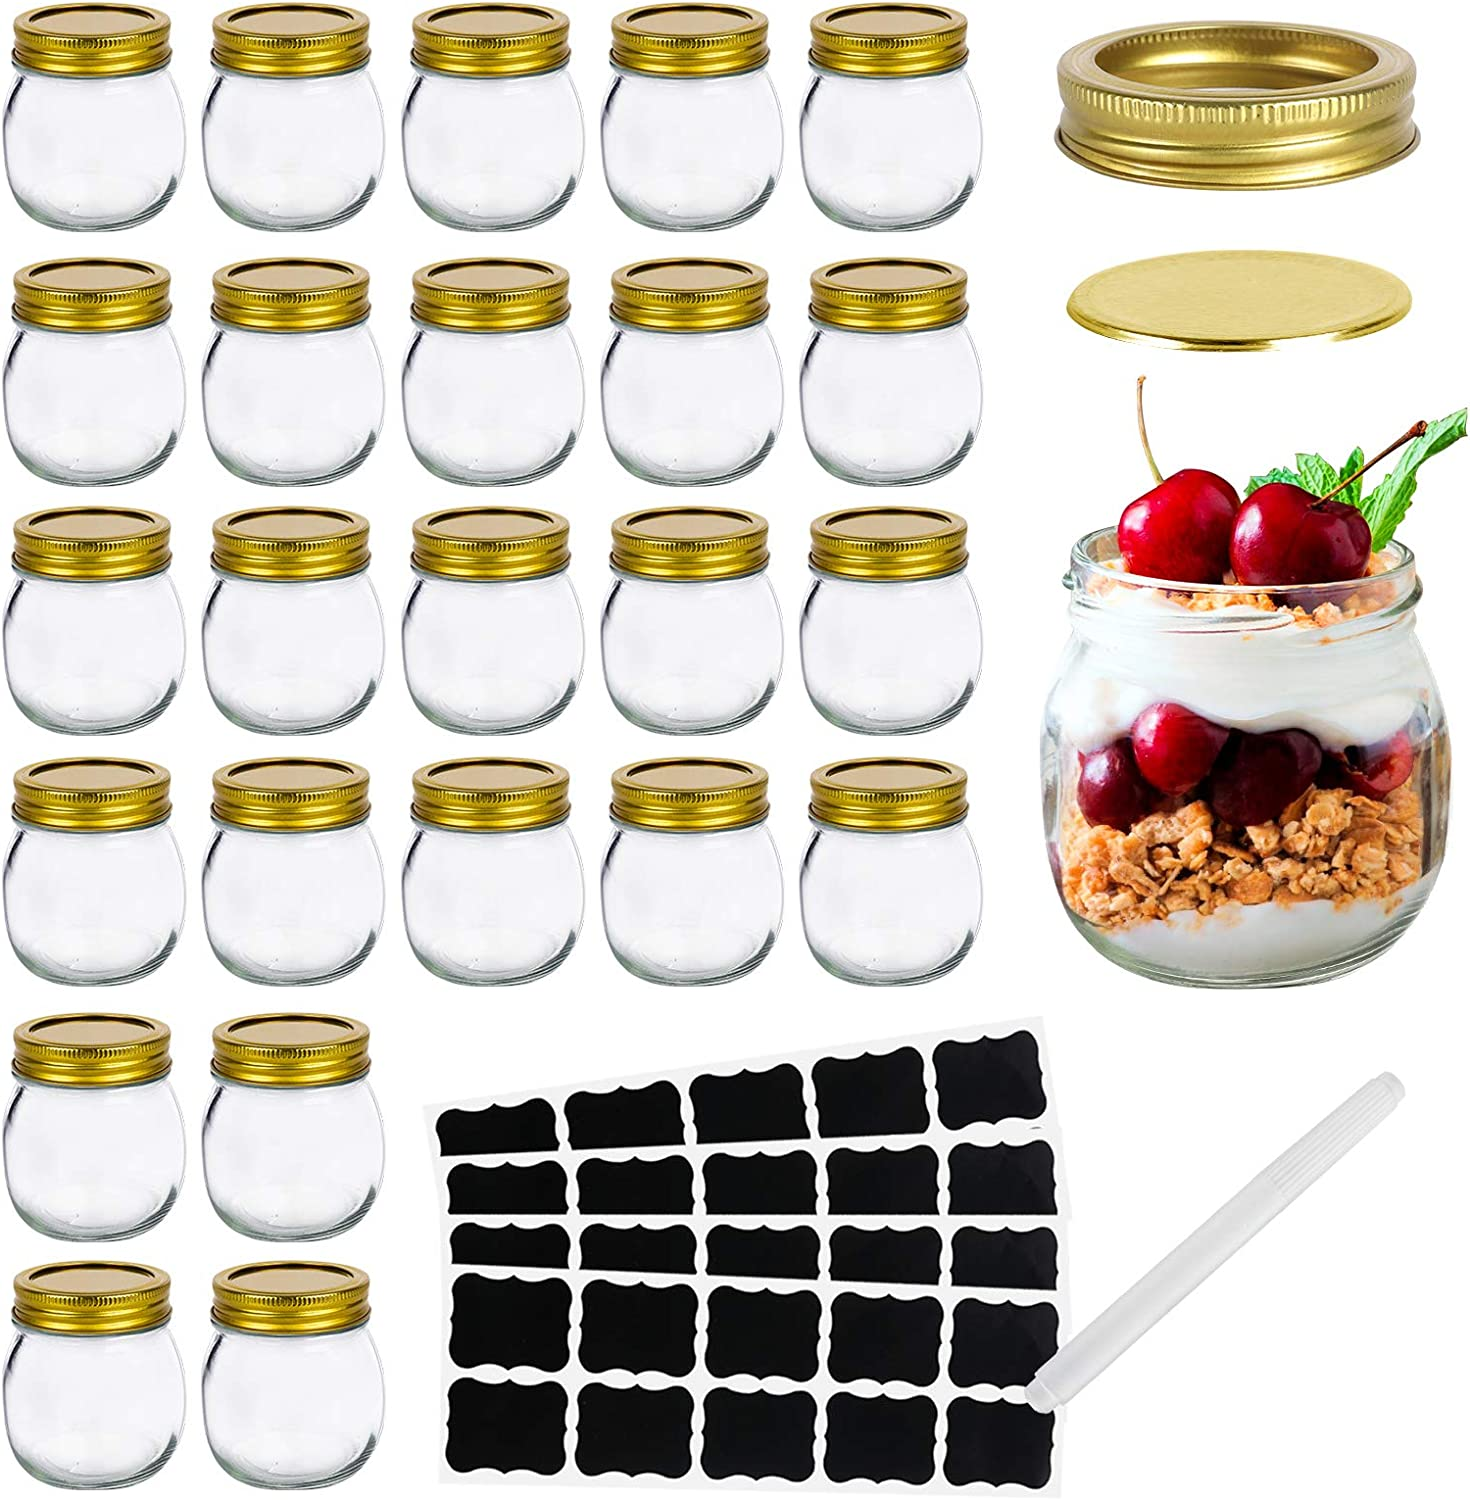 Mason Jars 10 OZ, Glass Jar ,Canning Jars Jelly Jars With Regular Lids, Ideal for Overnight oats,Jam, Honey, Yogurt,Wedding Favors, Baby Foods,Spice set of 24